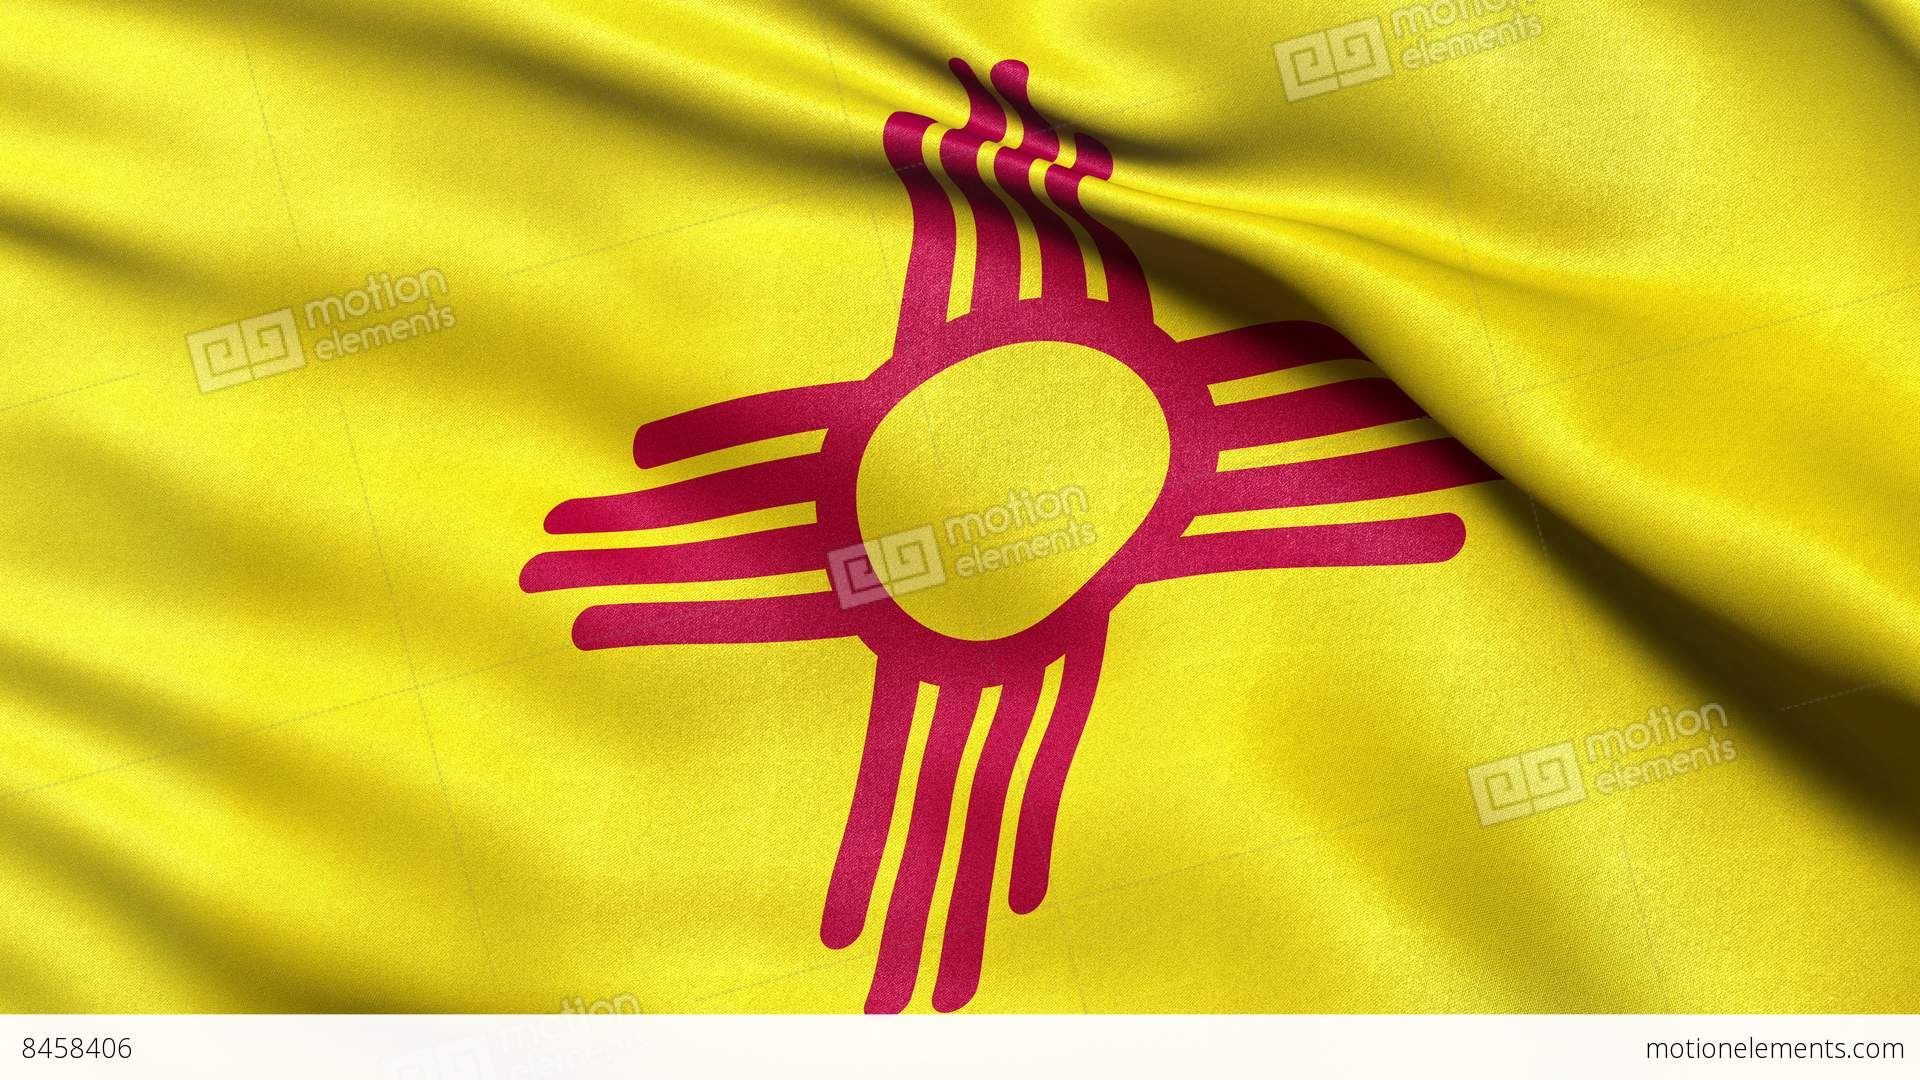 4k new mexico state flag seamless loop ultra hd stock animation 4k new mexico state flag seamless loop ultra hd stock video footage buycottarizona